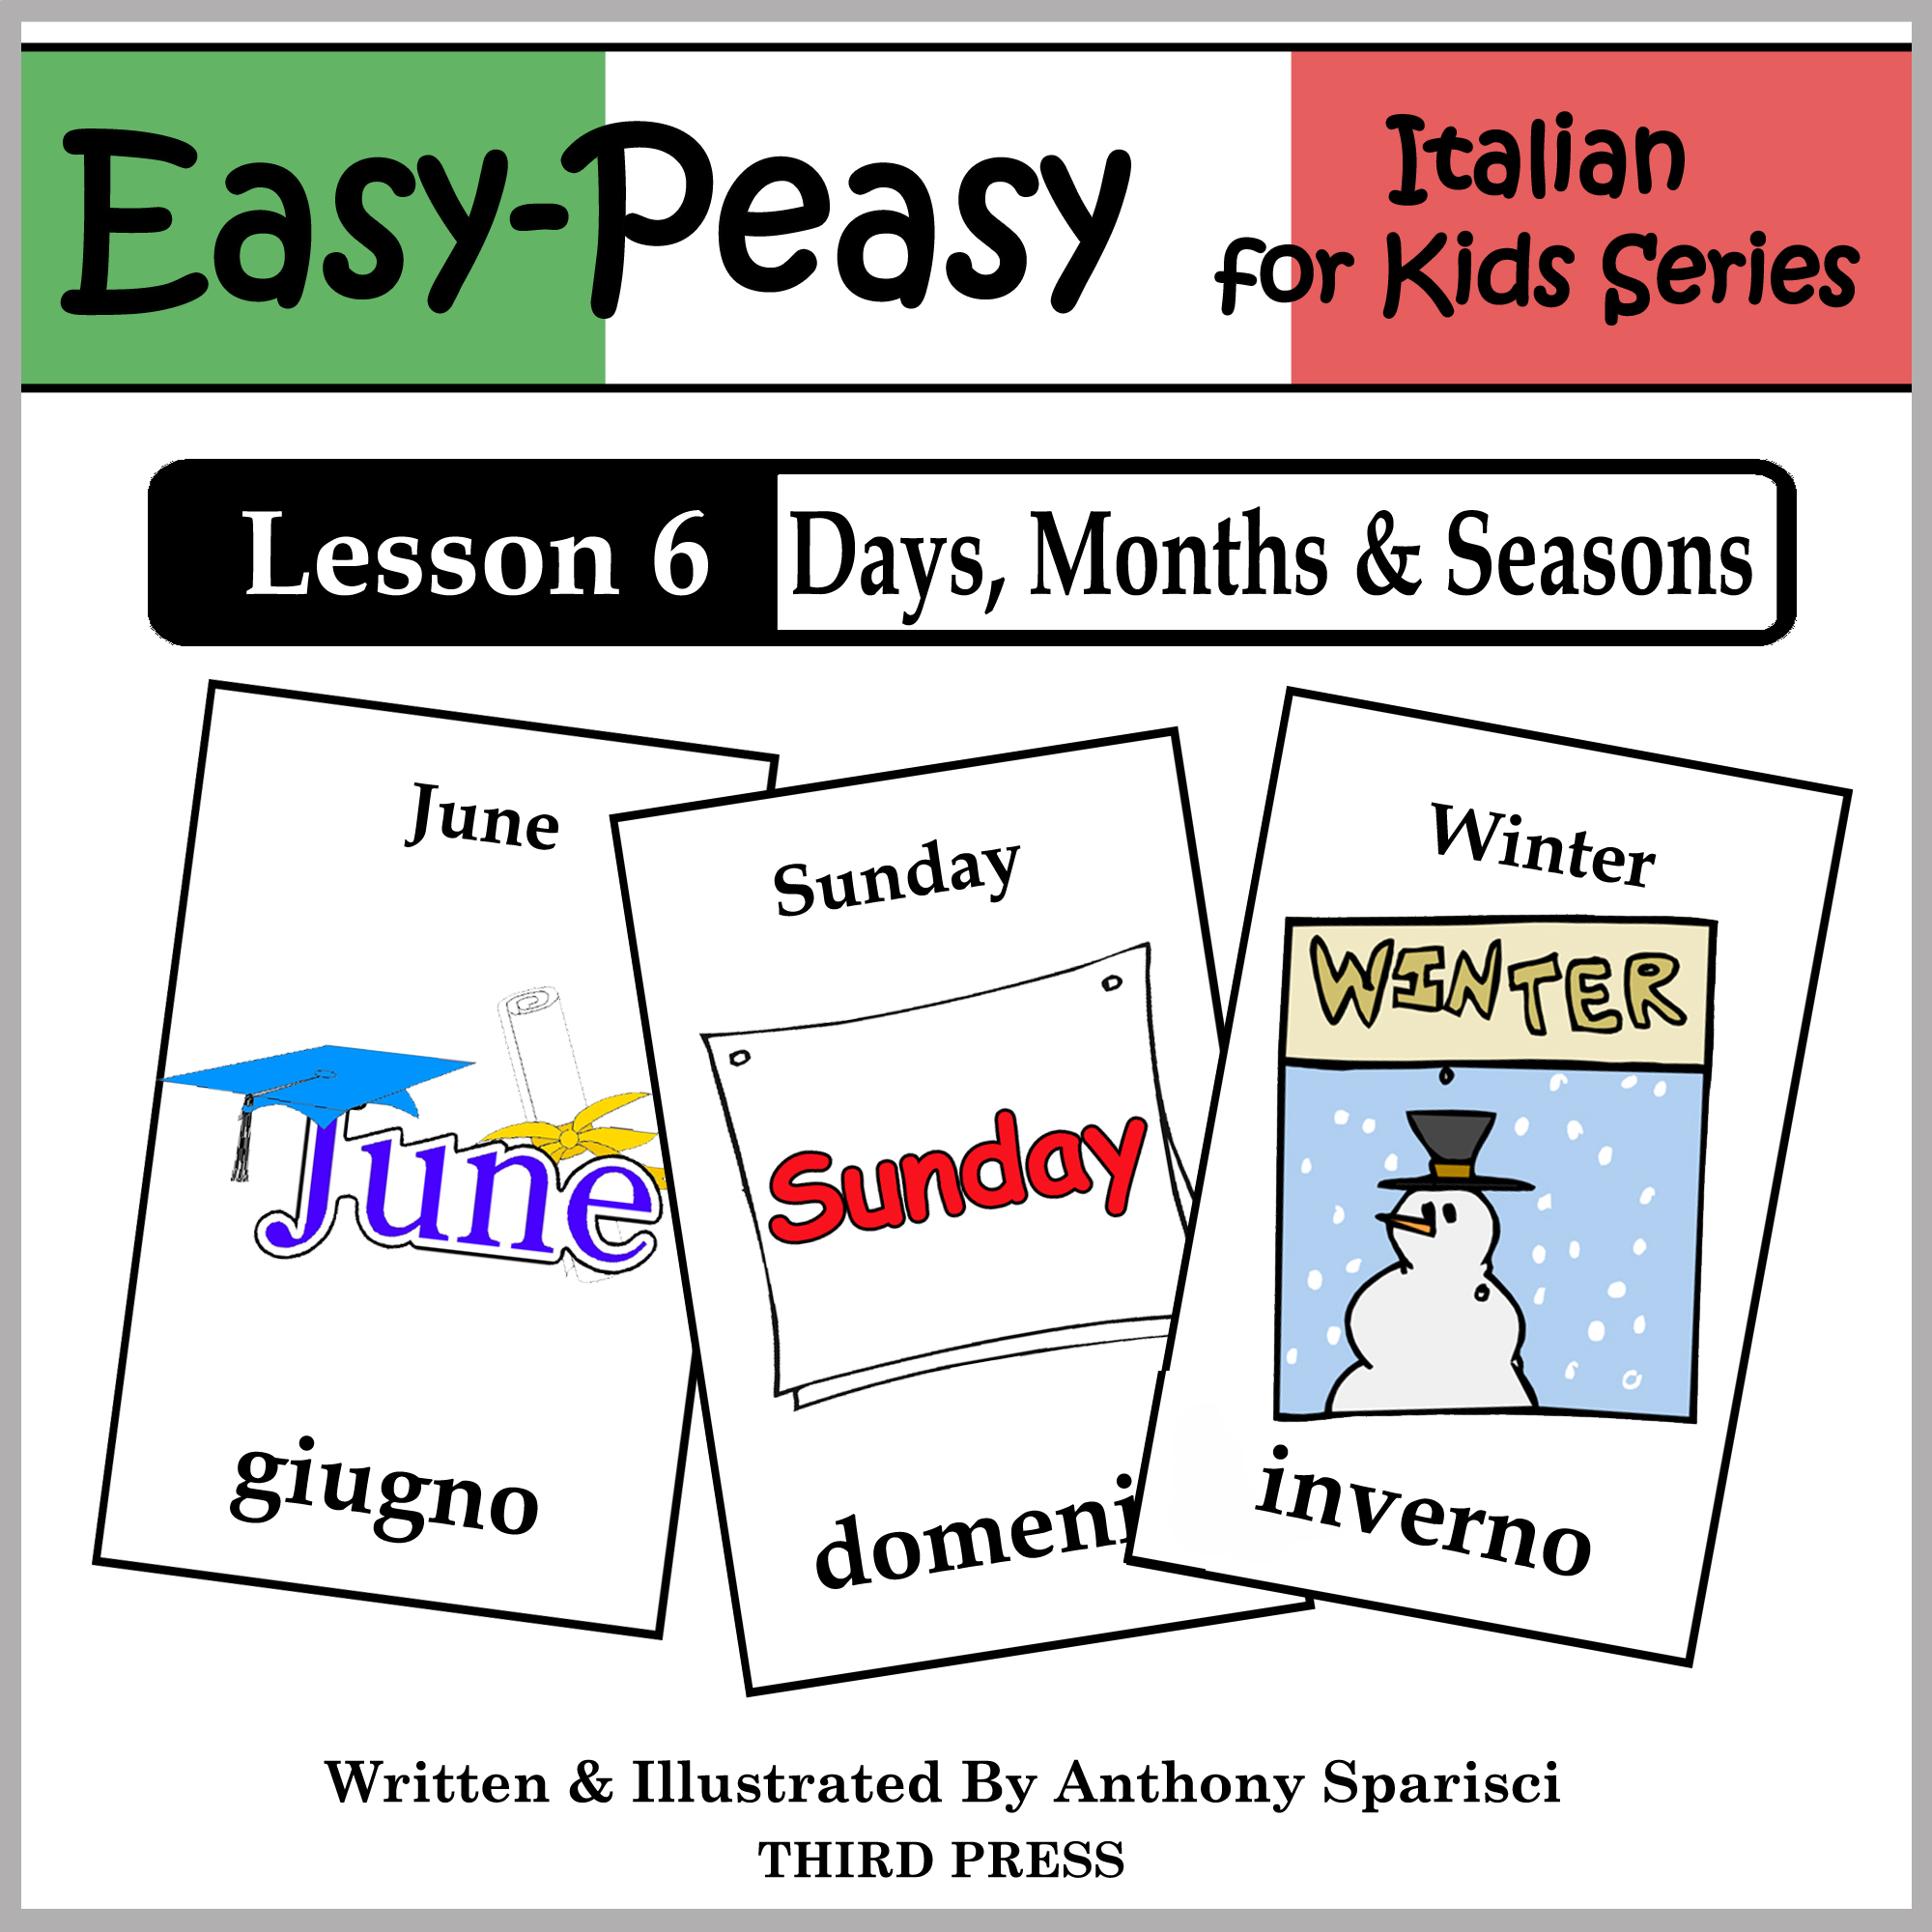 Italian Lesson 6: Months, Days & Seasons By: Anthony Sparisci